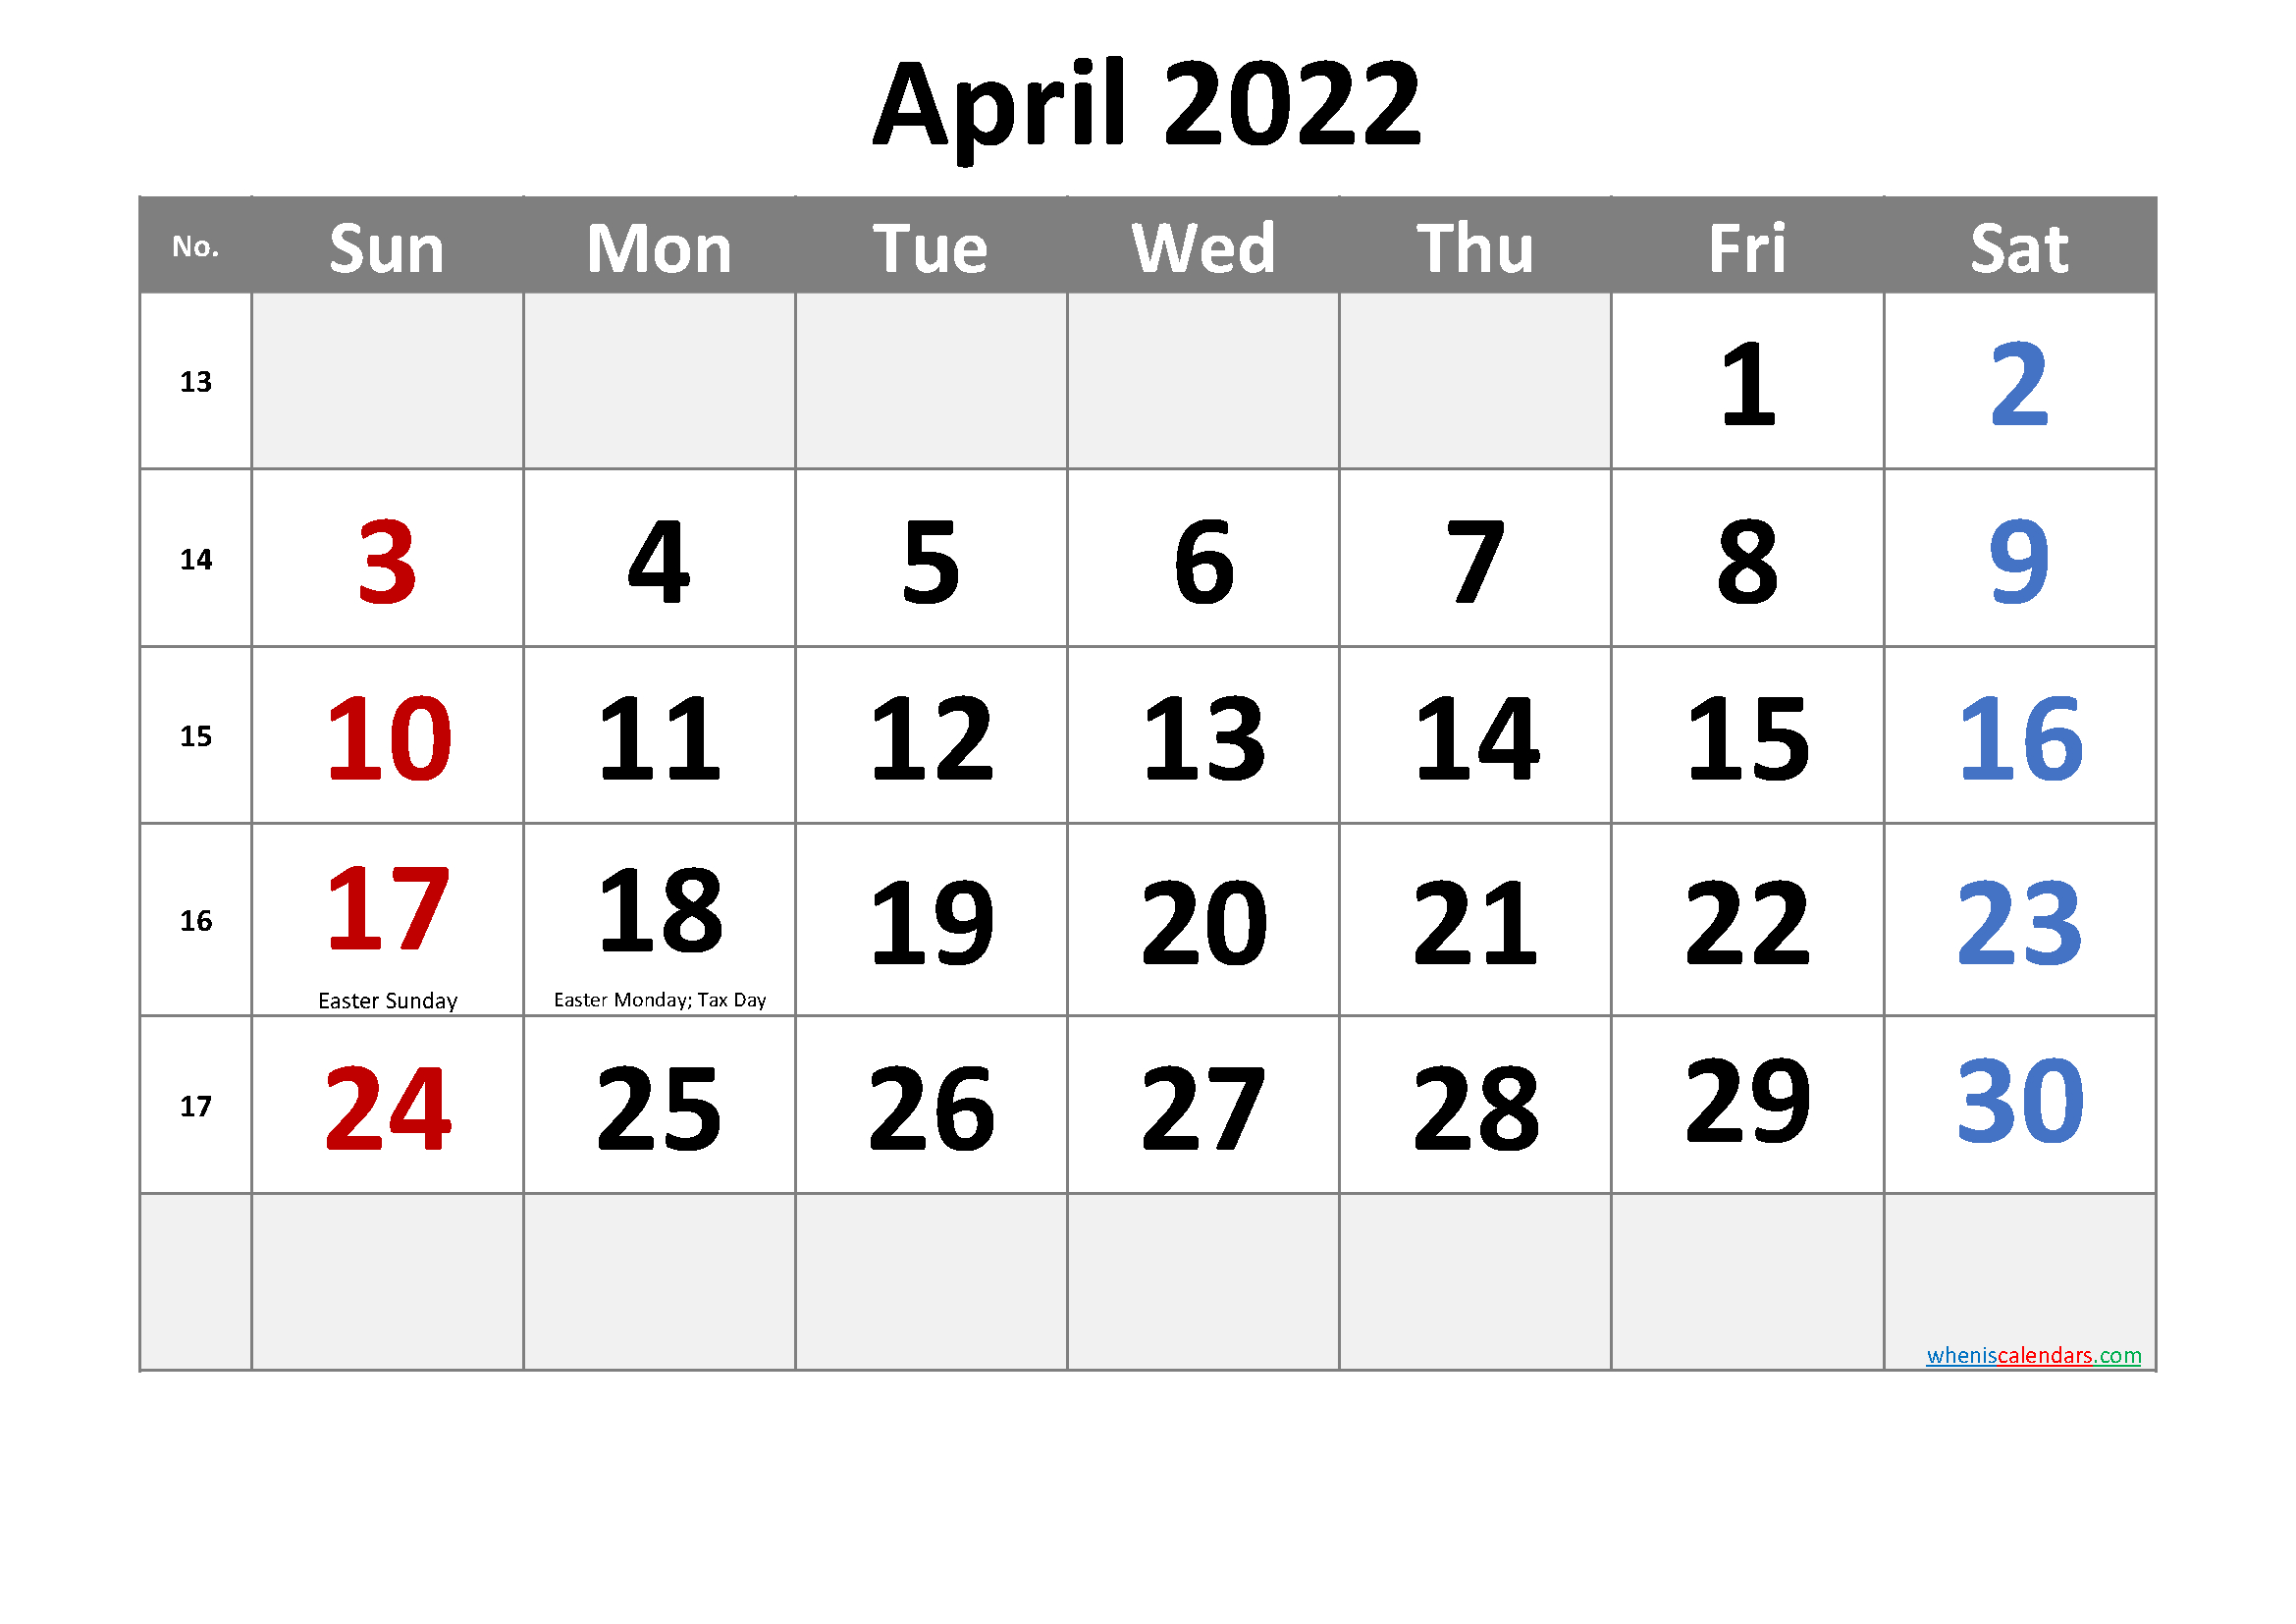 Free Printable April 2022 Calendar With Holidays intended for April May 2022 Printable Calendar Image